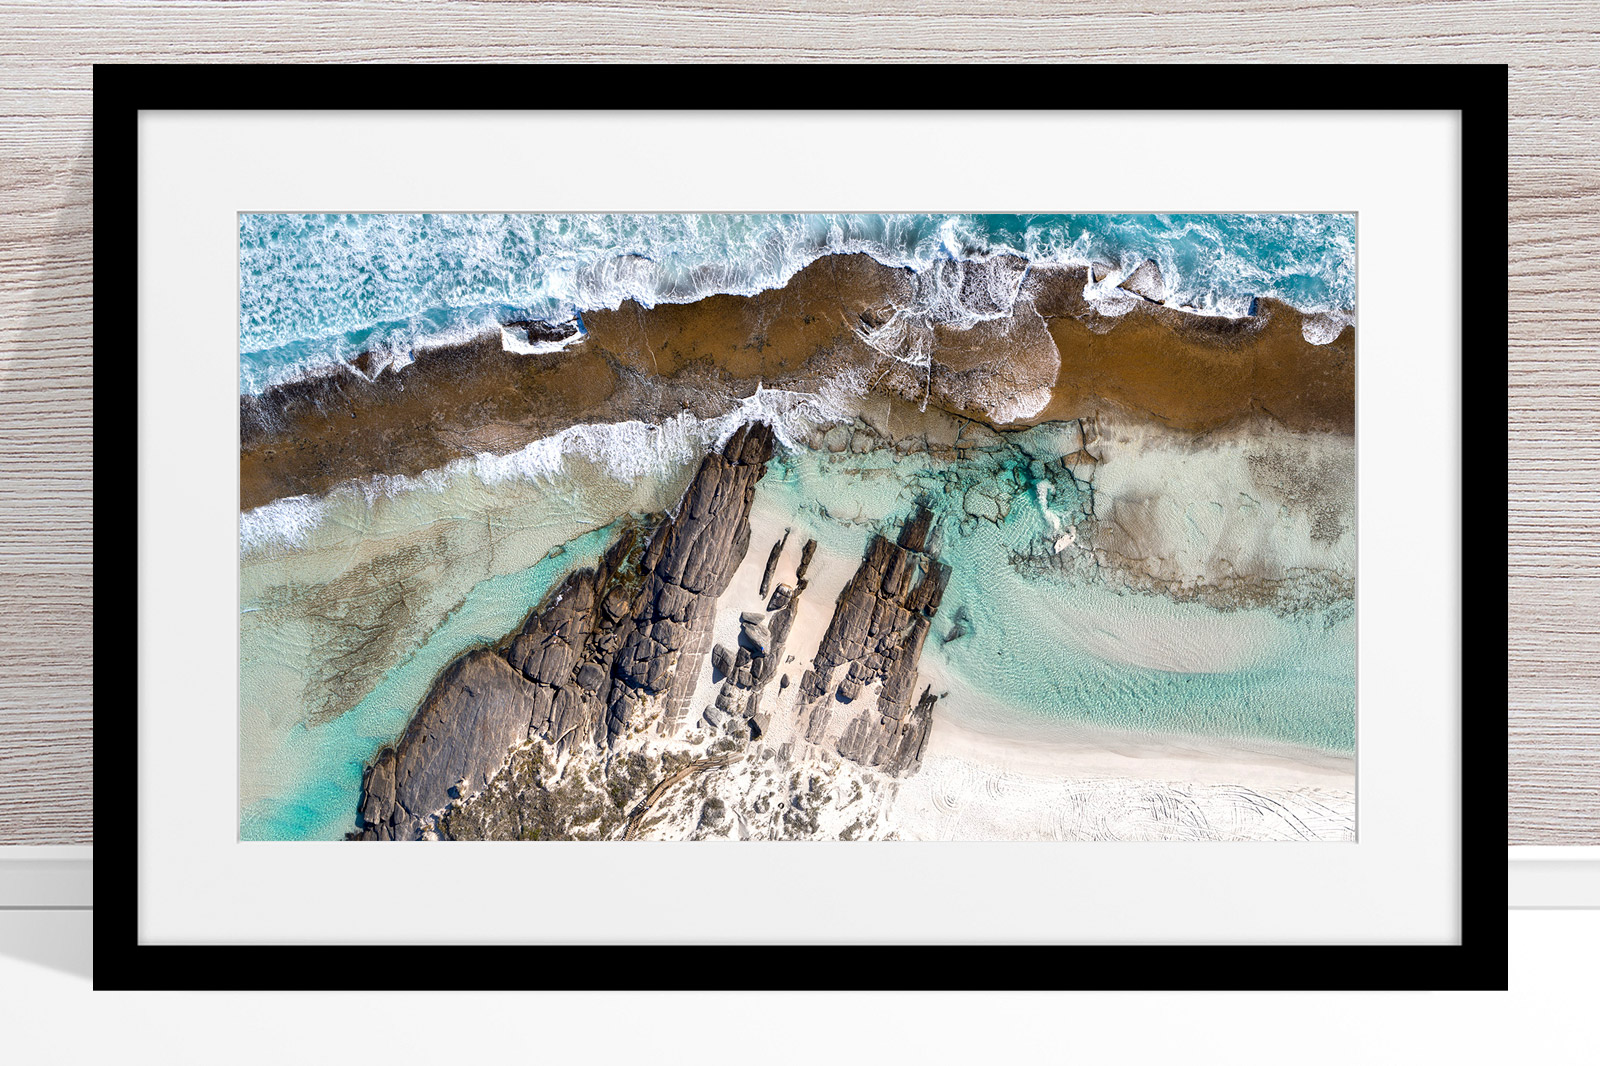 010 - Jason Mazur - '11 Mile Beach, Esperance' Black Frame